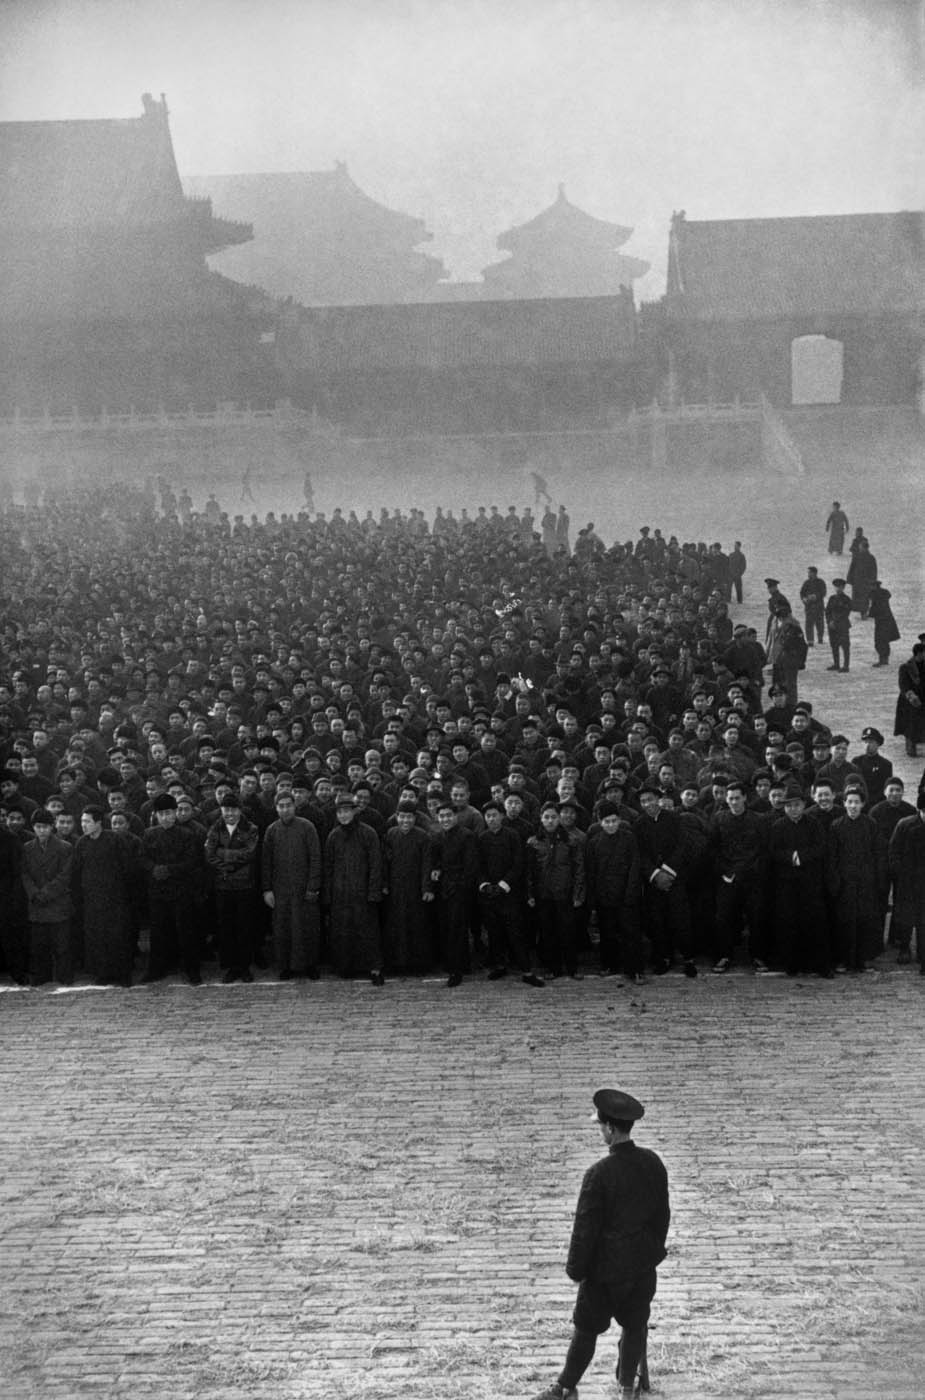 Early in the morning, in the Forbidden City, ten thousand new recruits have gathered to form a Nationalist regiment, Beijing, December 1948. © Fondation Henri Cartier-Bresson / Magnum Photos